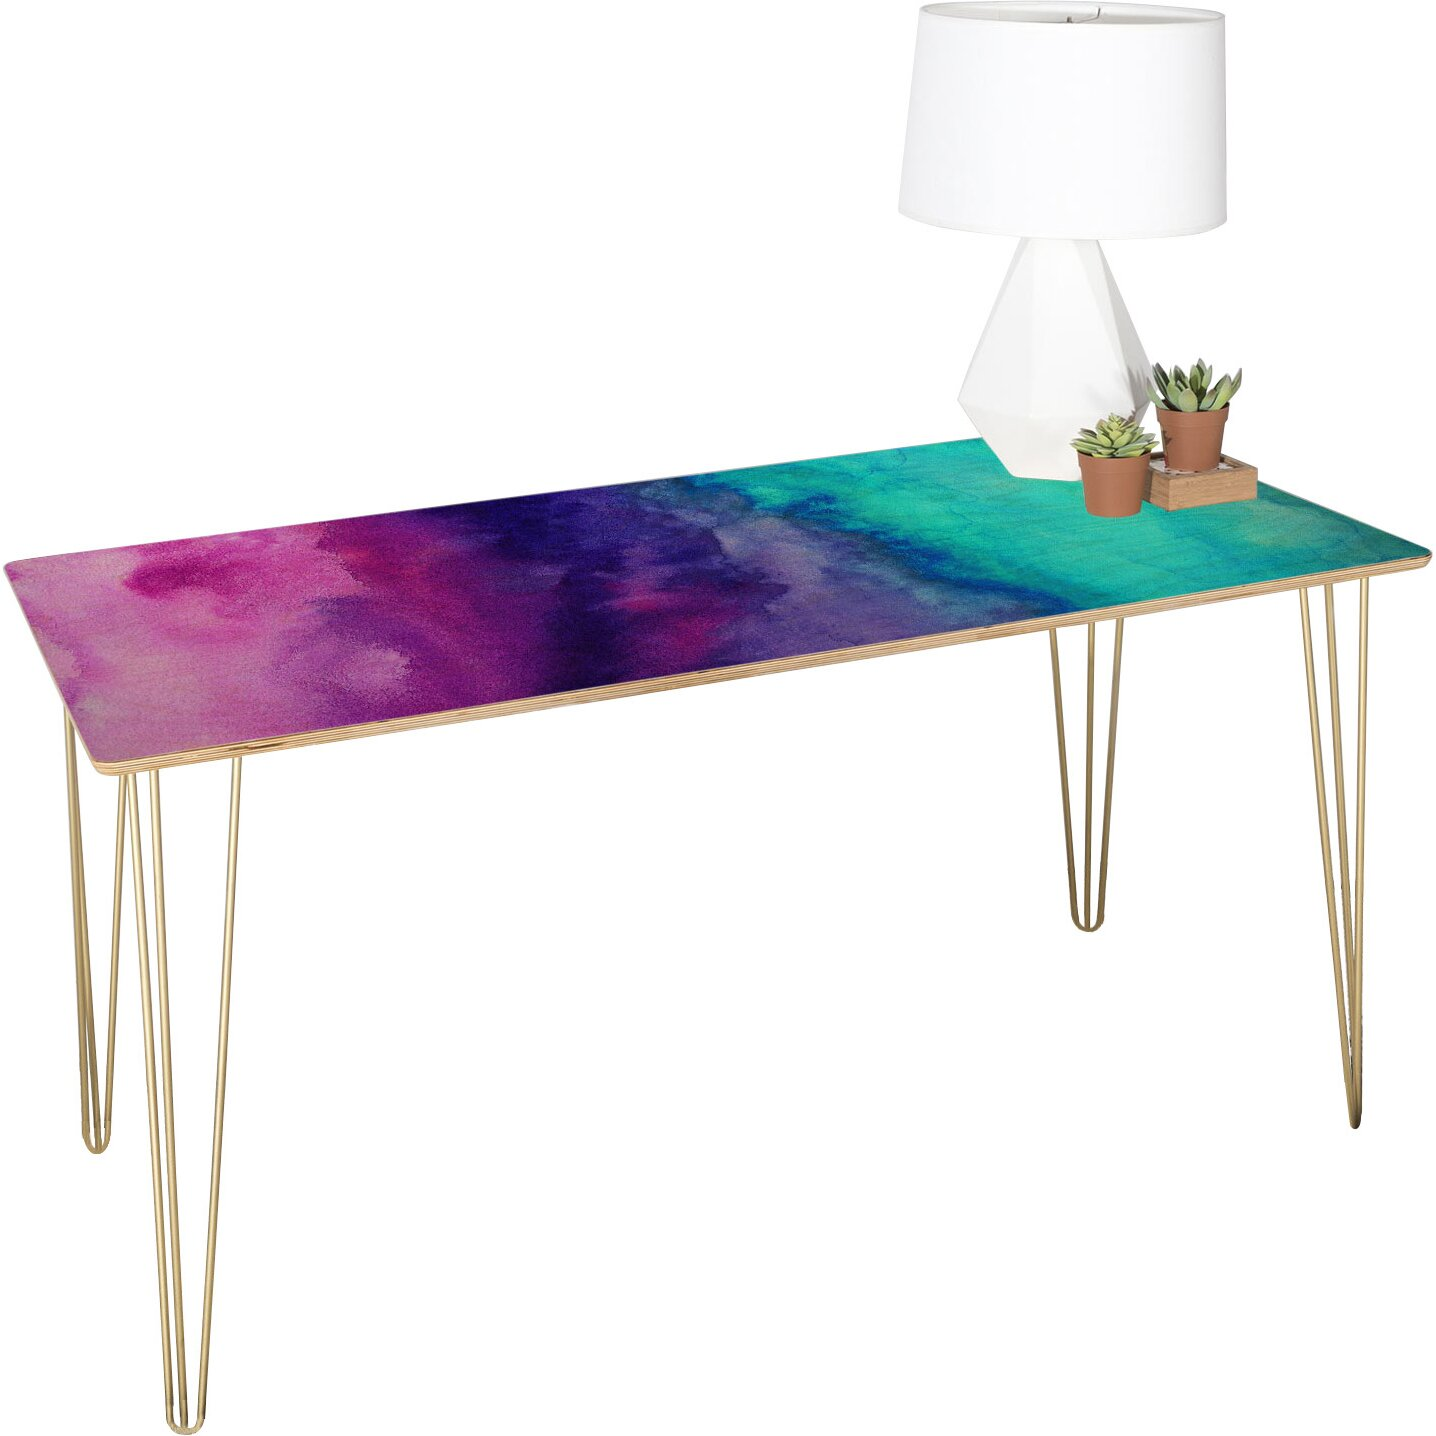 Deny Designs Jacqueline Maldonado The Sound Writing Desk | Wayfair Supply